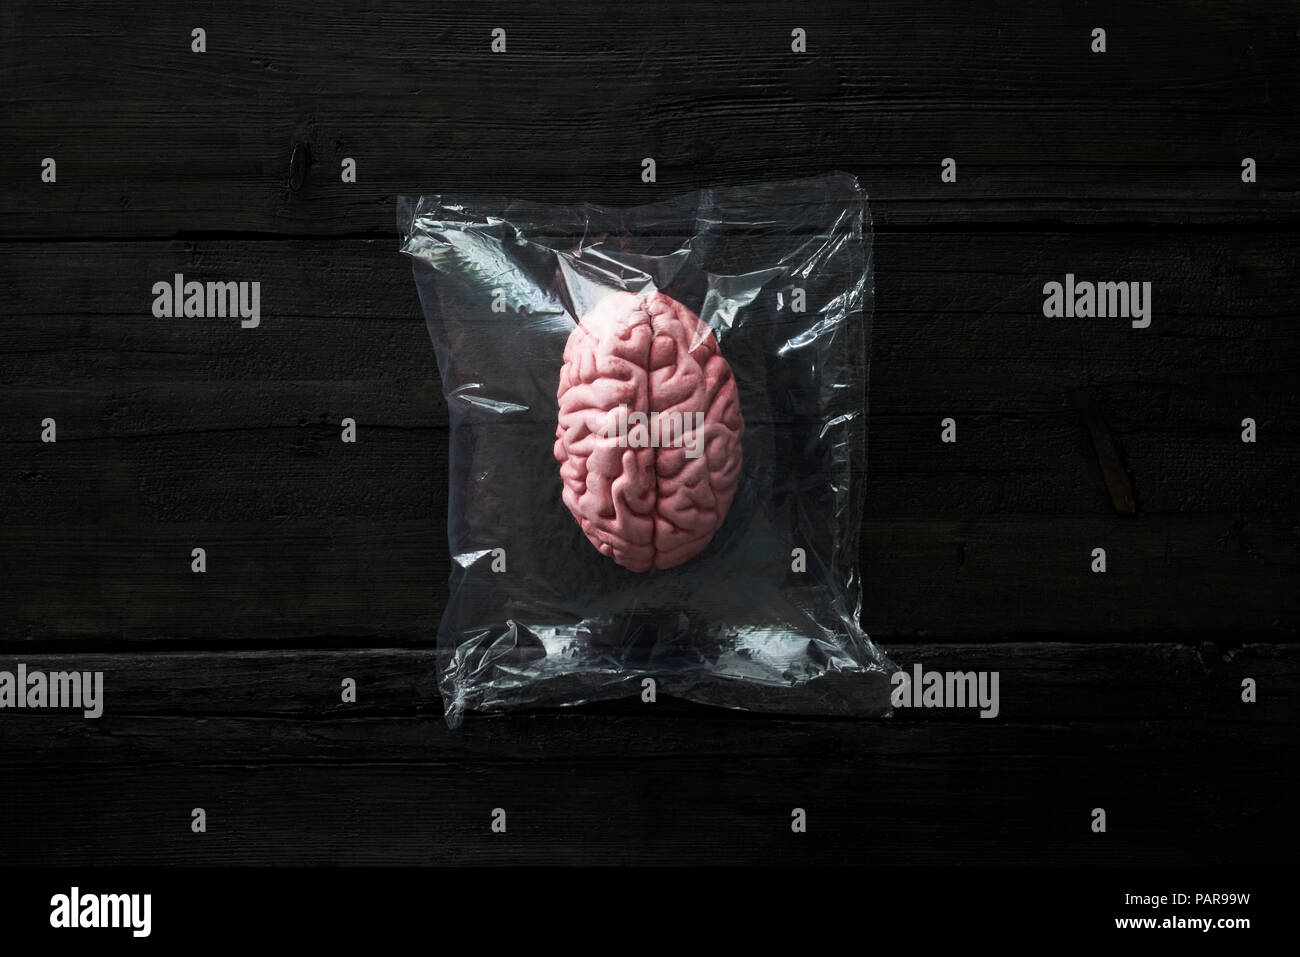 Brain, isolated in plastic bag - Stock Image